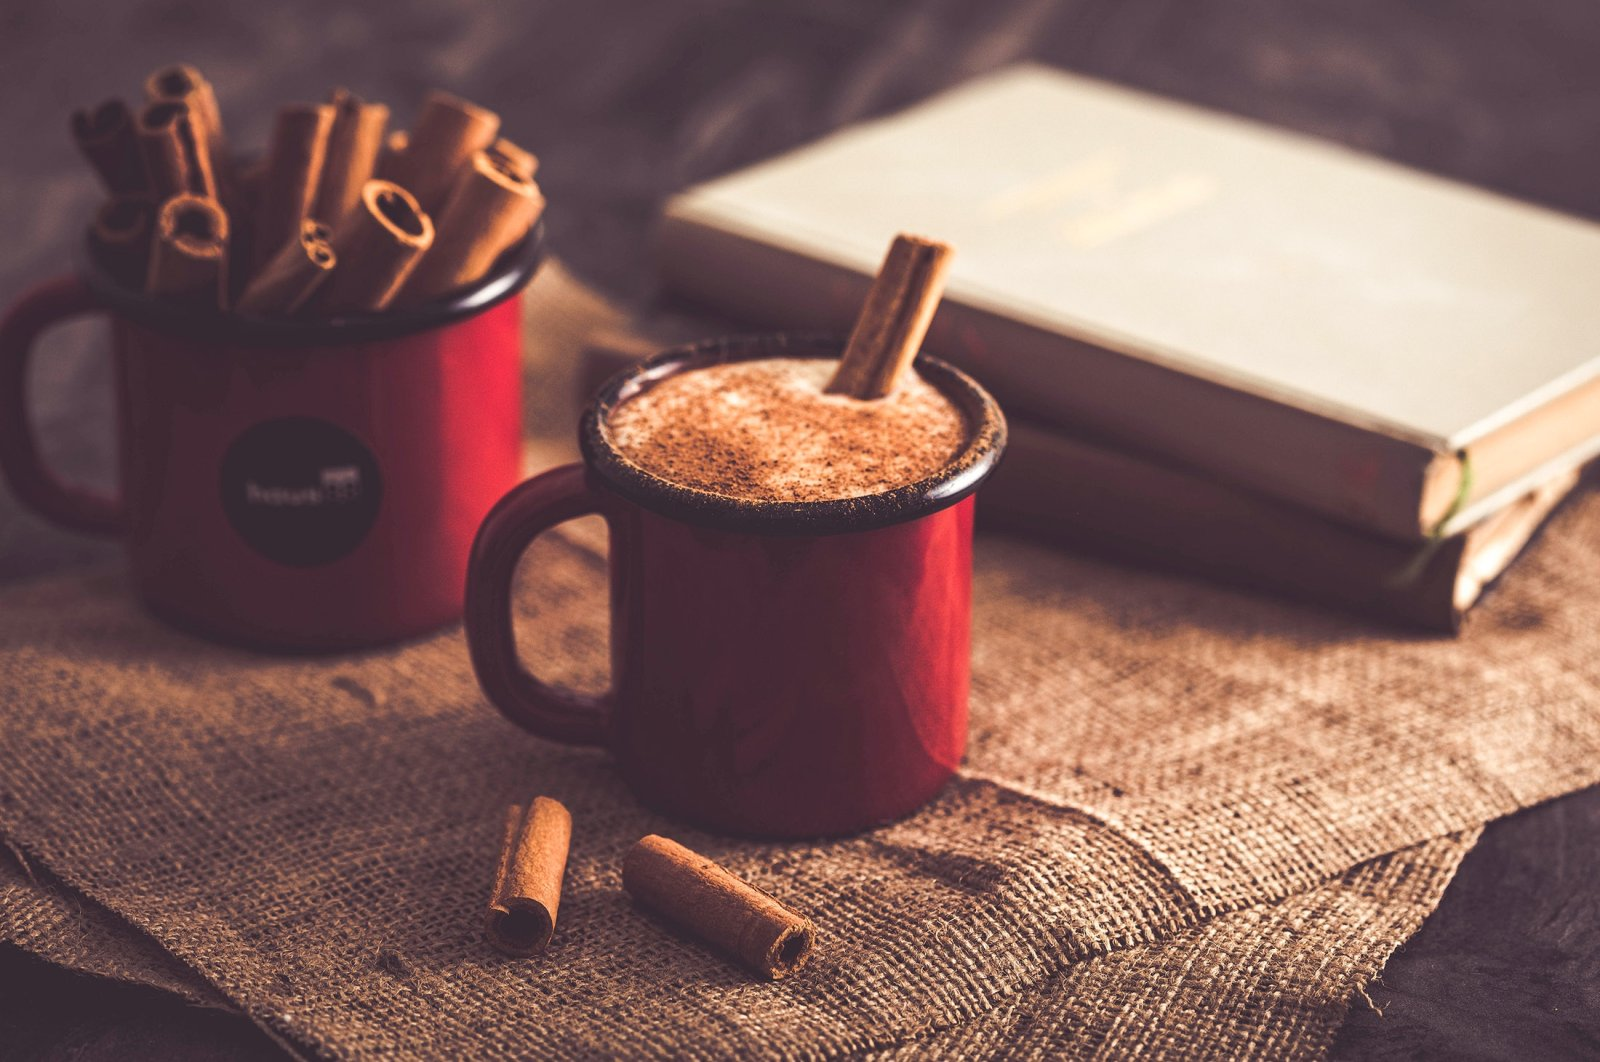 Salep, a milky traditional hot drink topped with cinnamon, is one of the many winter traditions of the Turks. (Shutterstock Photo)